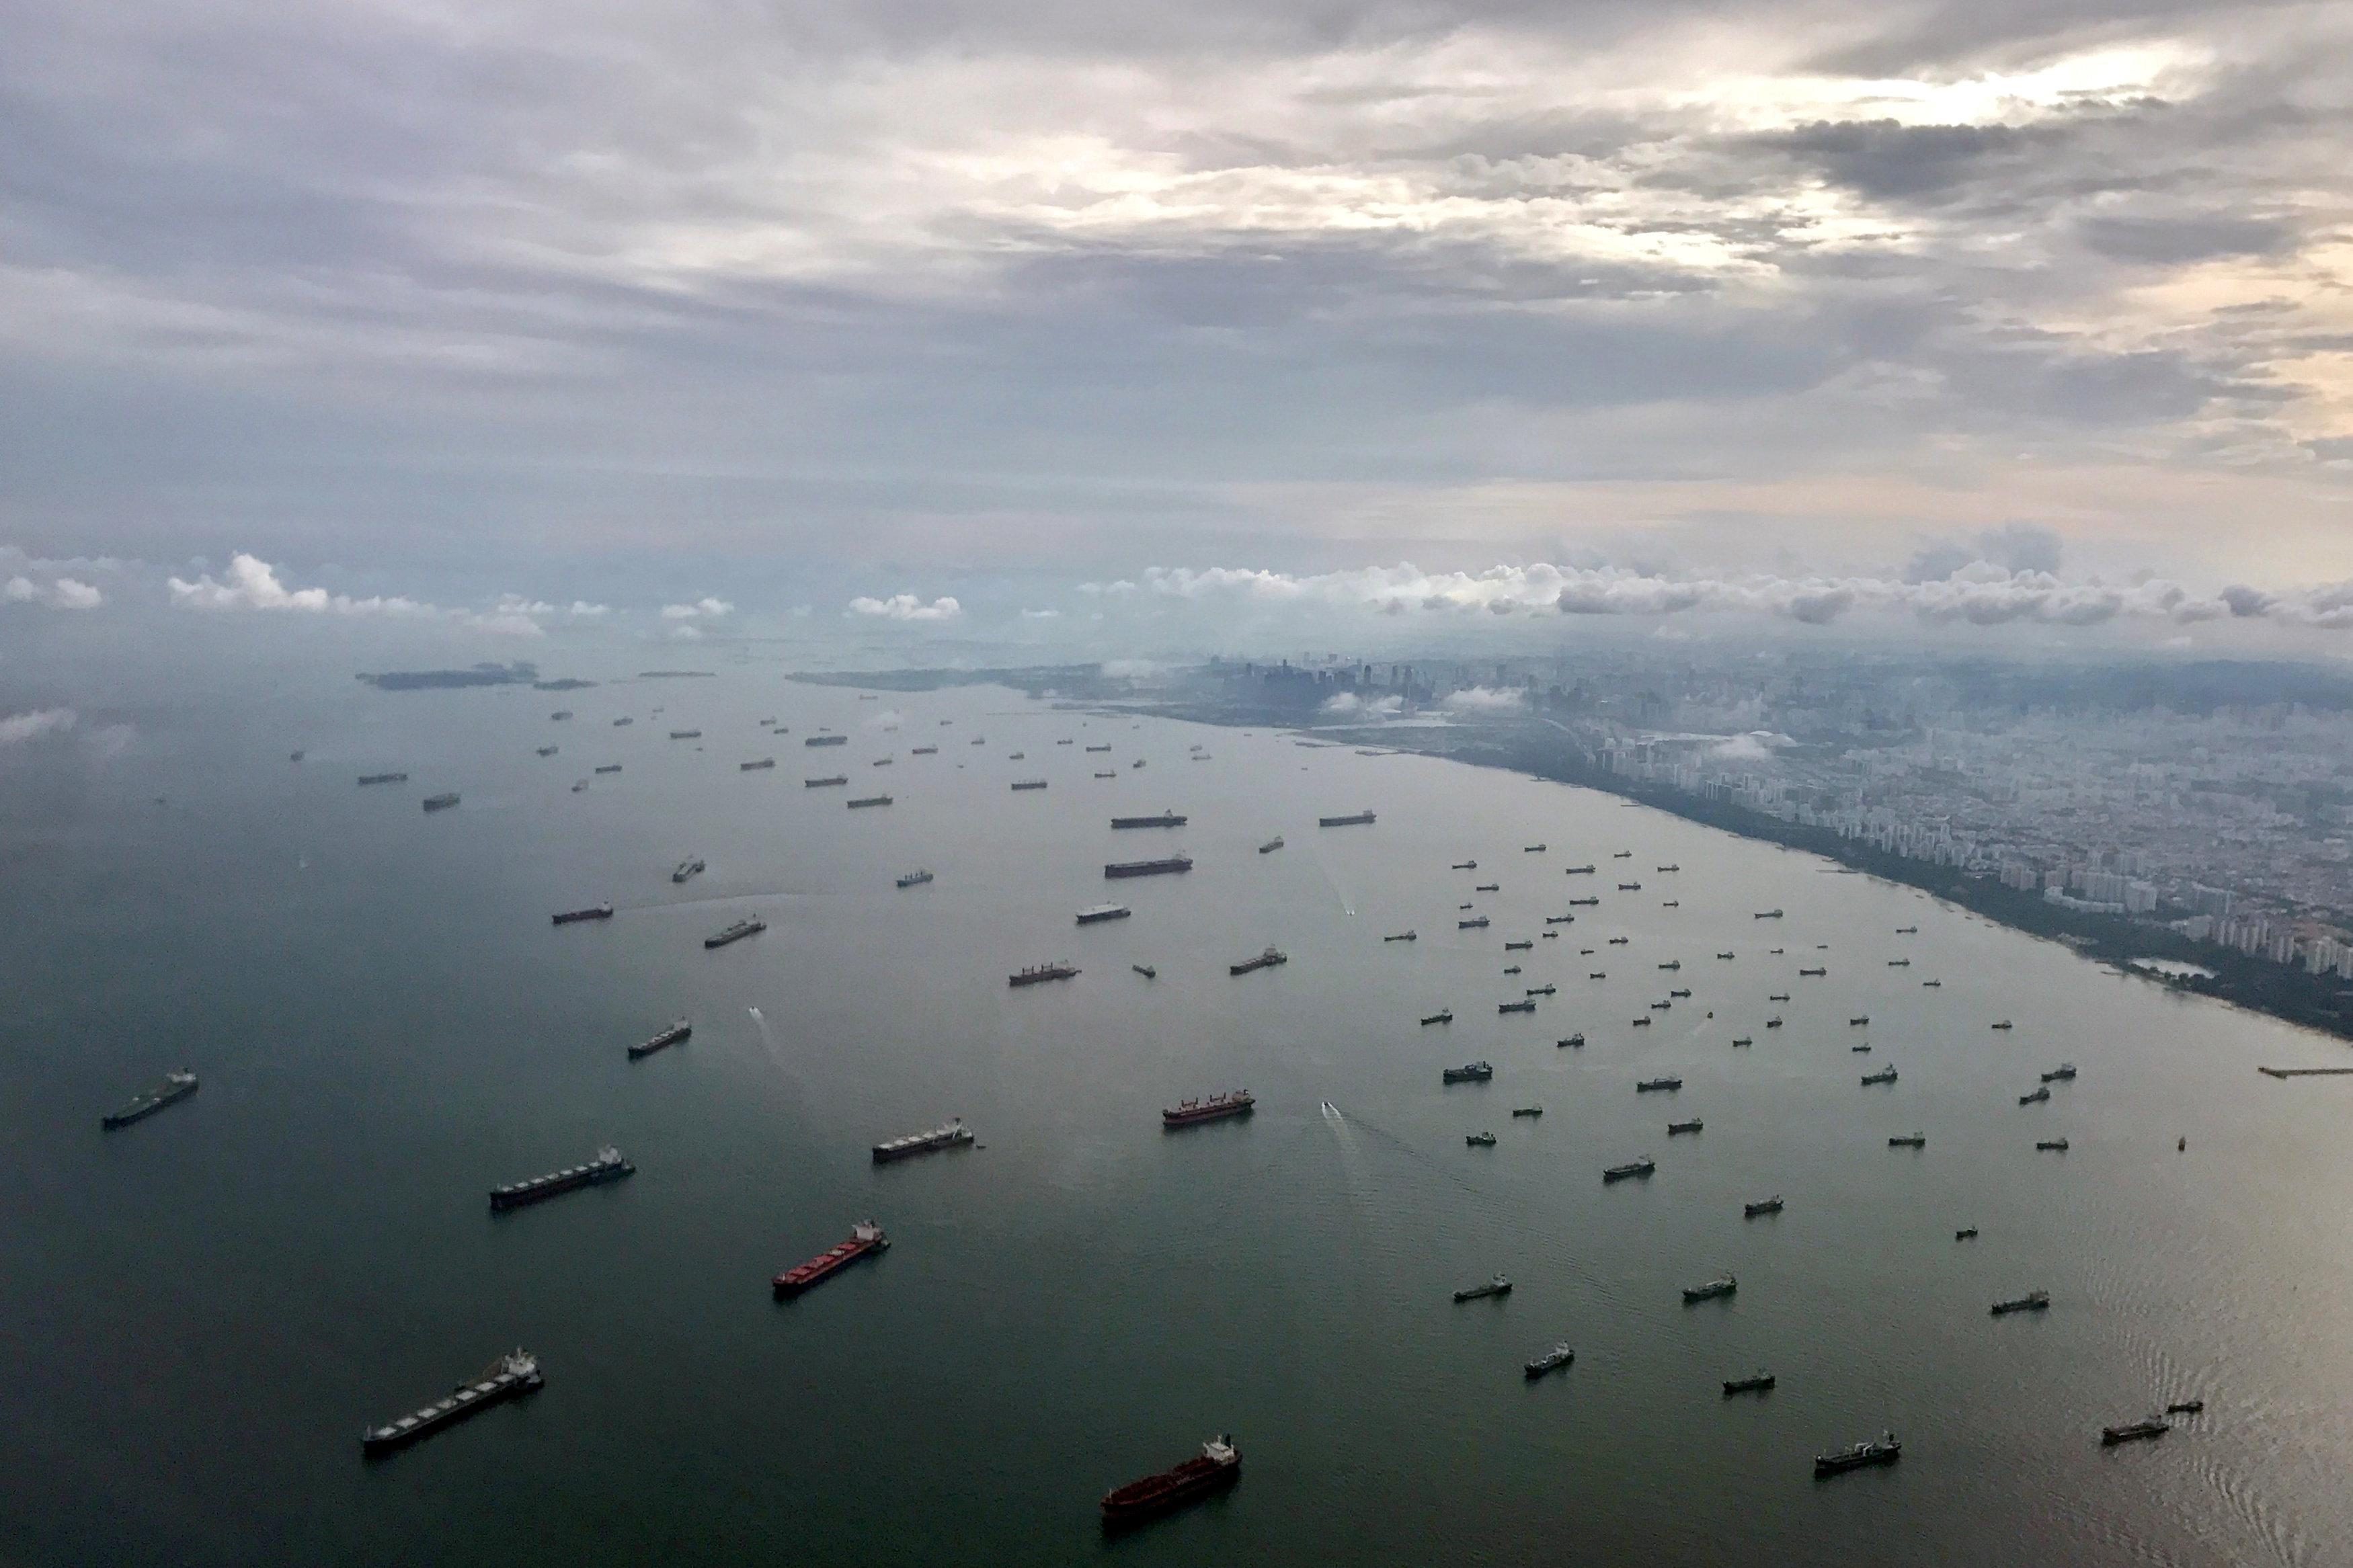 A bird's-eye view of ships along the coast in Singapore July 9, 2017. Jorge Silva